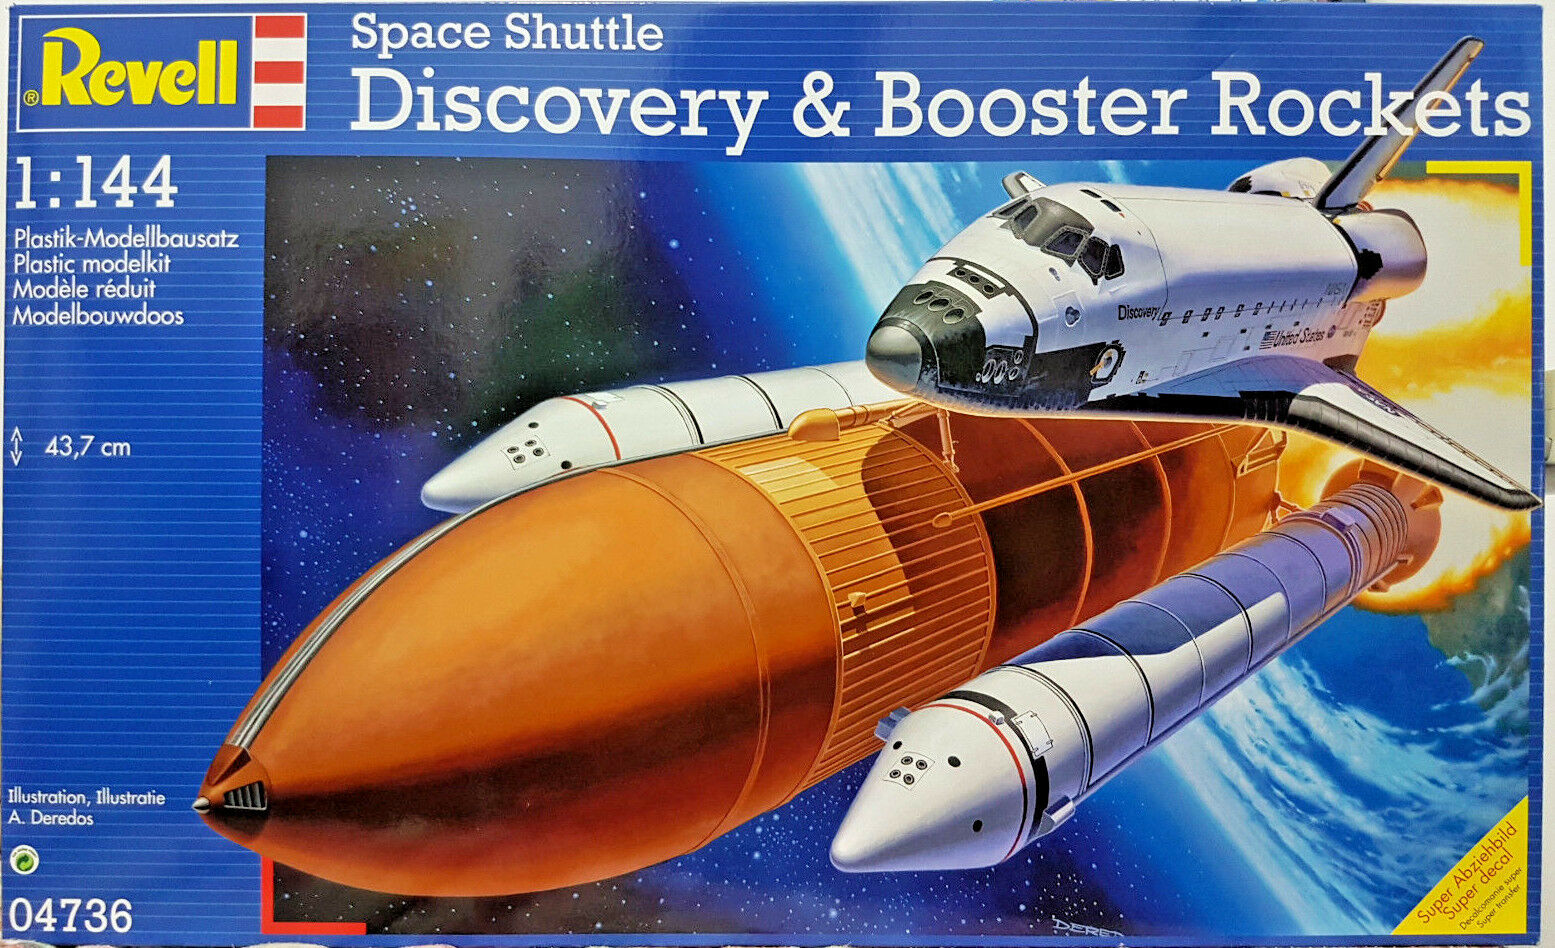 Rockwell Space Shuttle Discovery & Booster Rockets - Revell Kit 1 144 - 04736